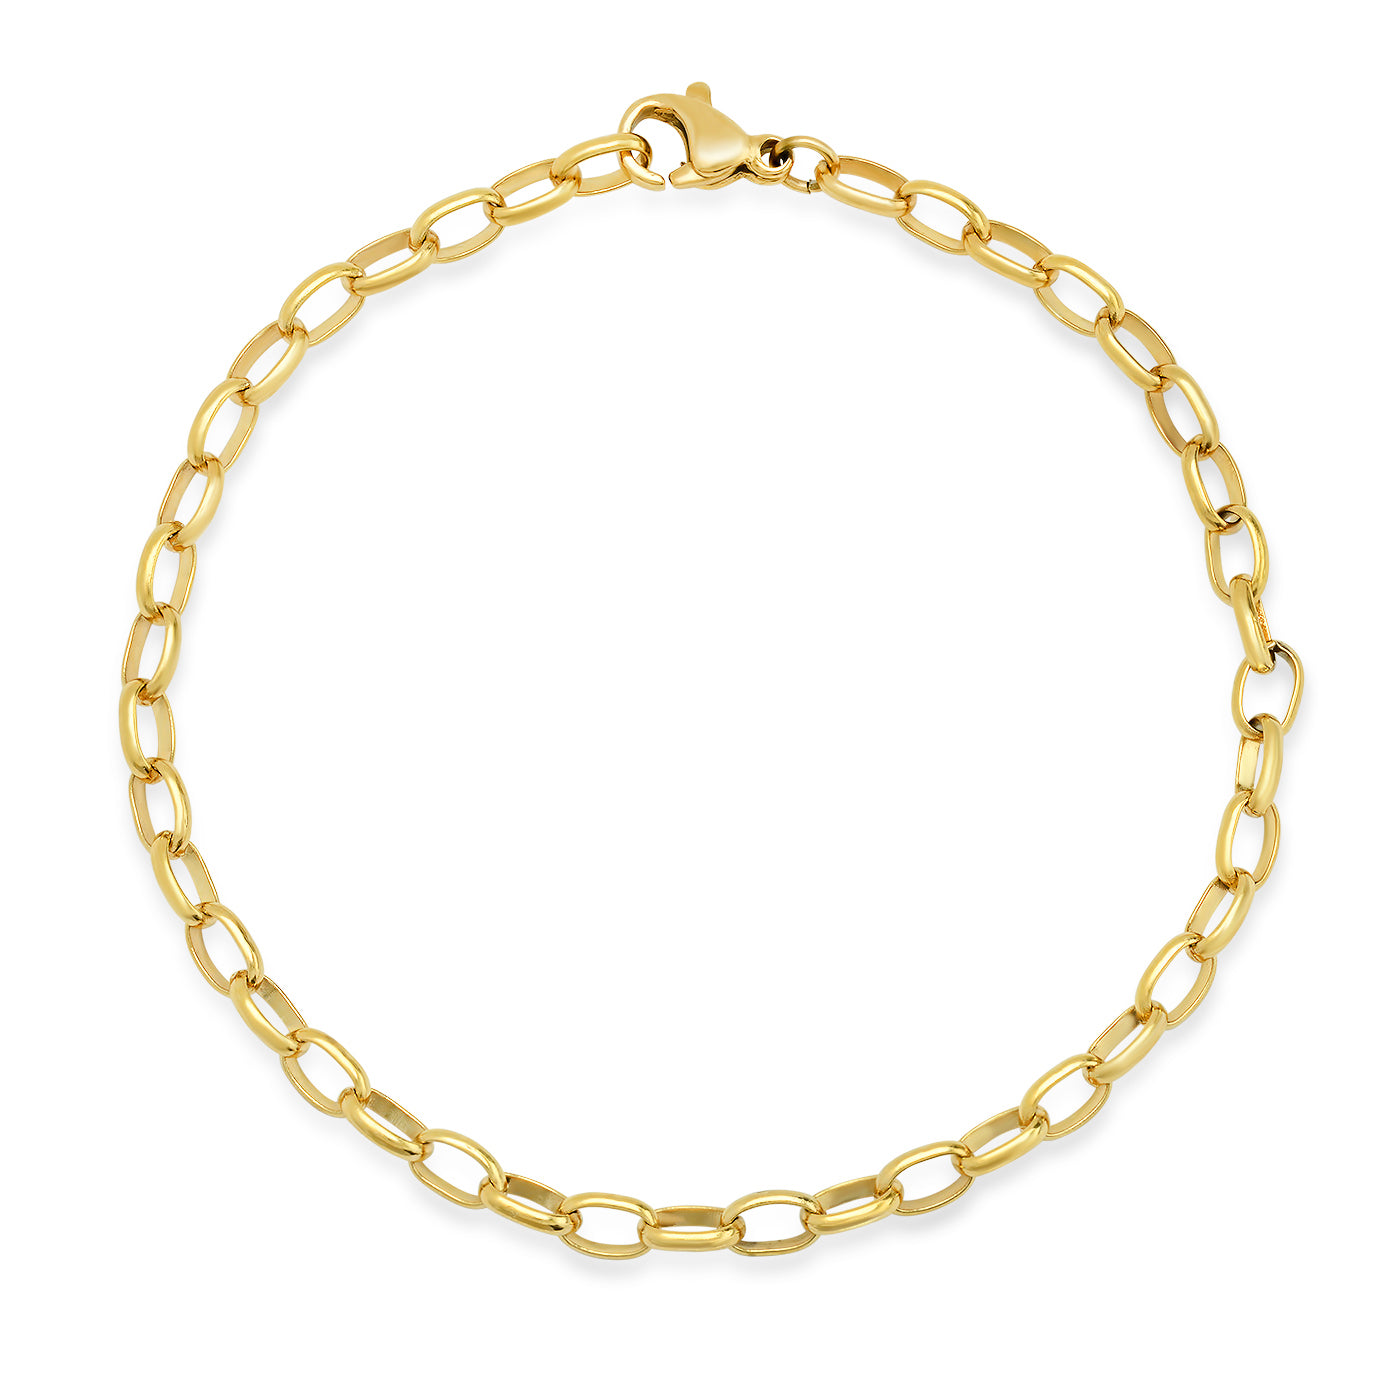 Gold Oval Cable Chain Link Bracelet